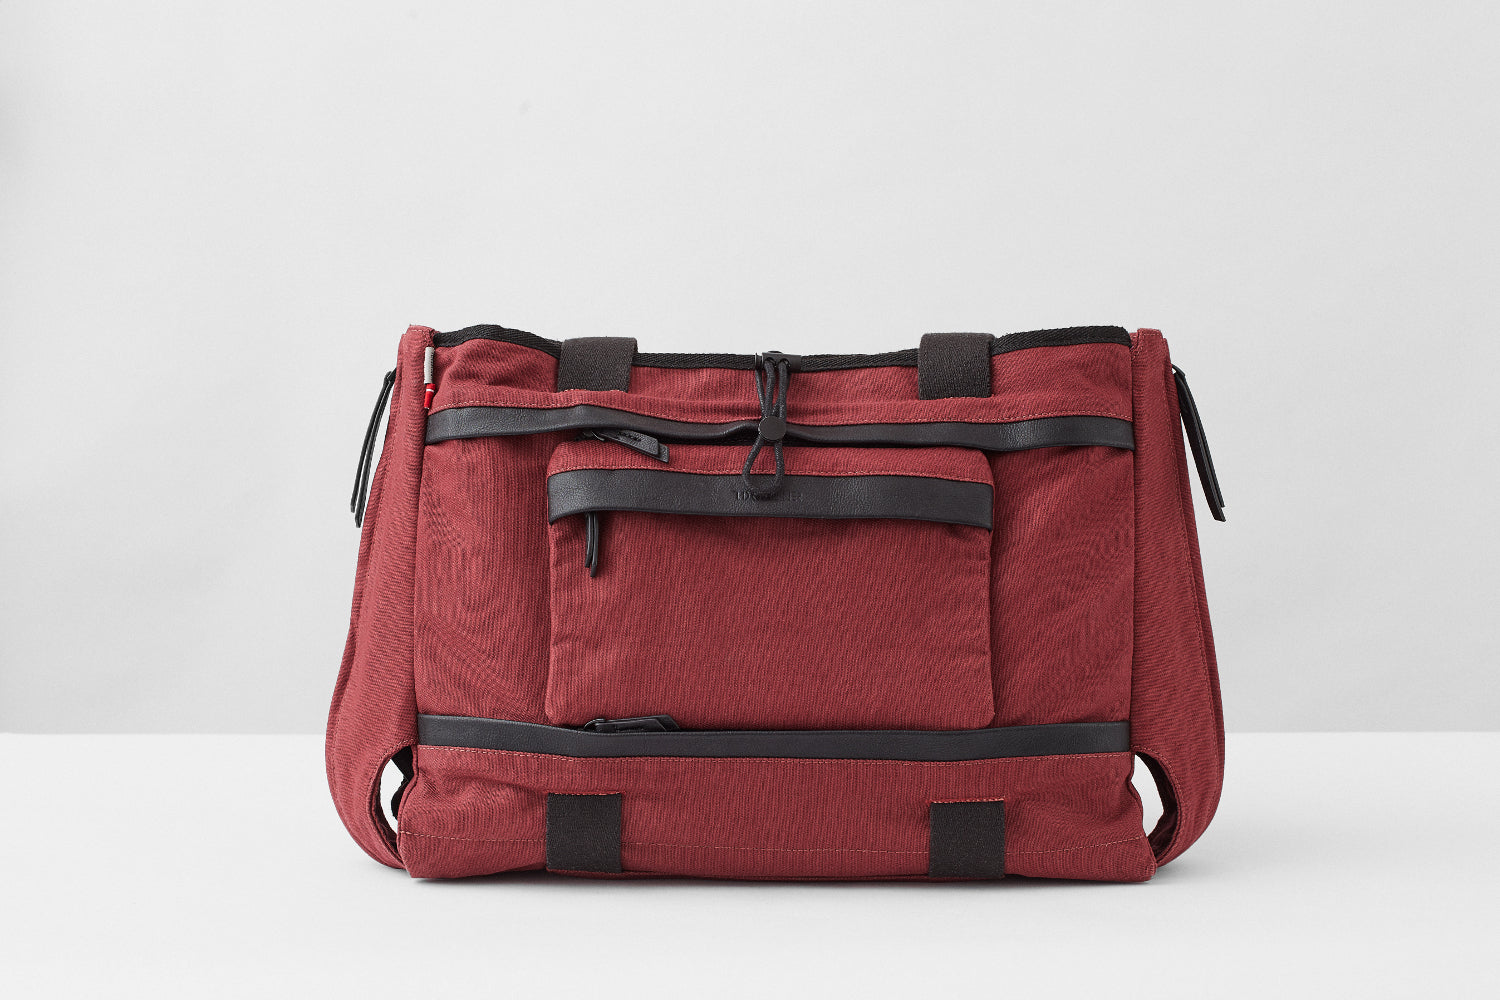 """All in One"" Thorsbrenner Baby Changing Bag - Burgundy Red"